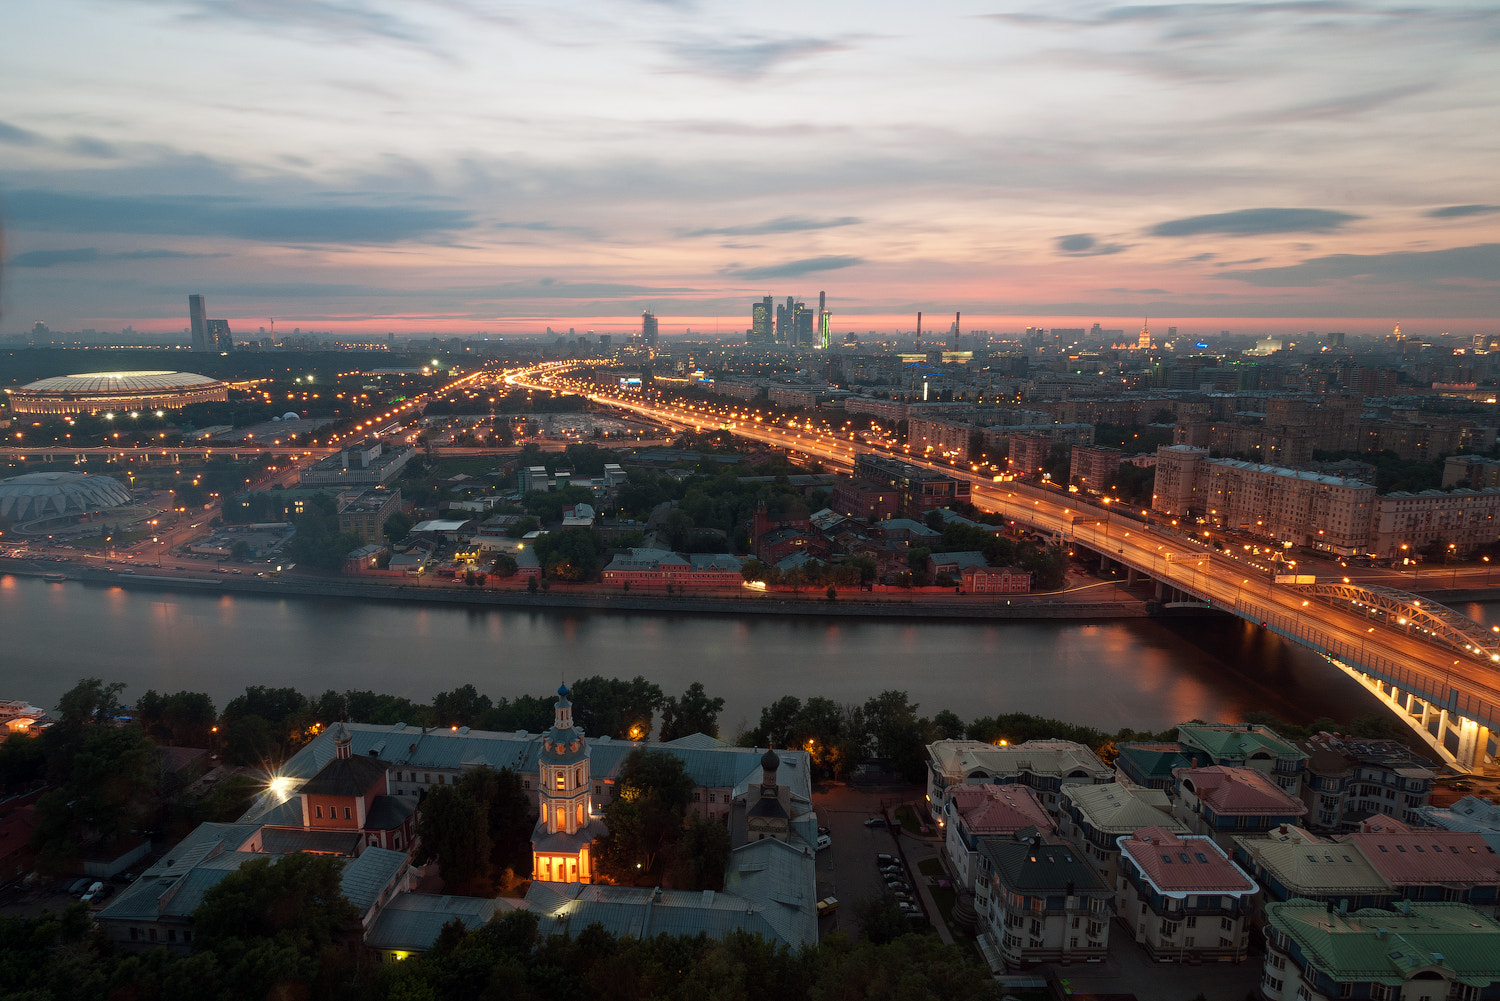 Photograph City sunset by Alexei Zaripov on 500px